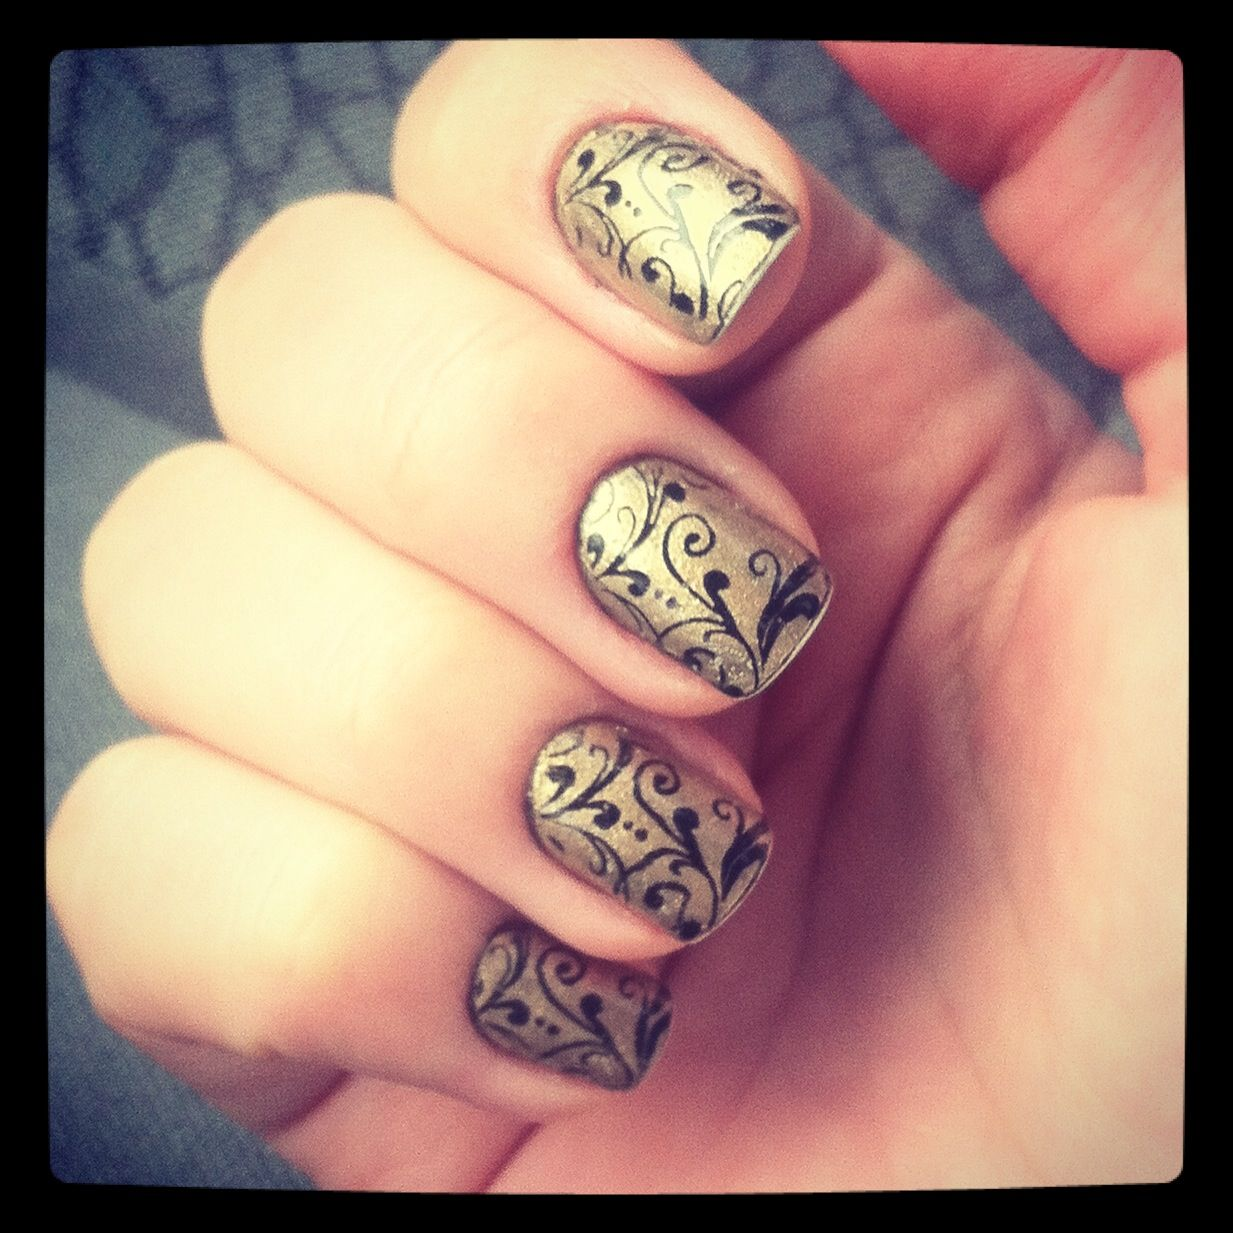 Nails for winter.  Bundlemonster stamper.